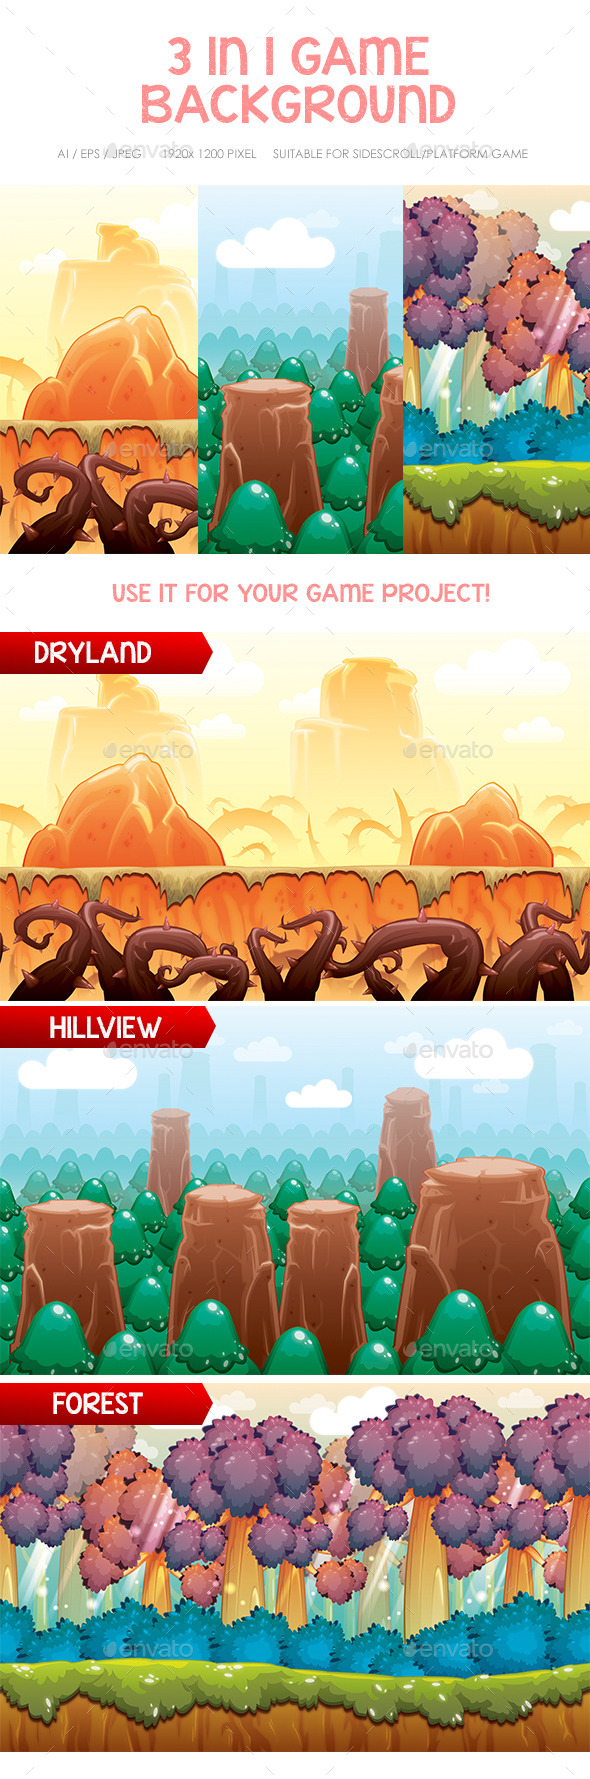 Hills Forest & Dryland Game Background